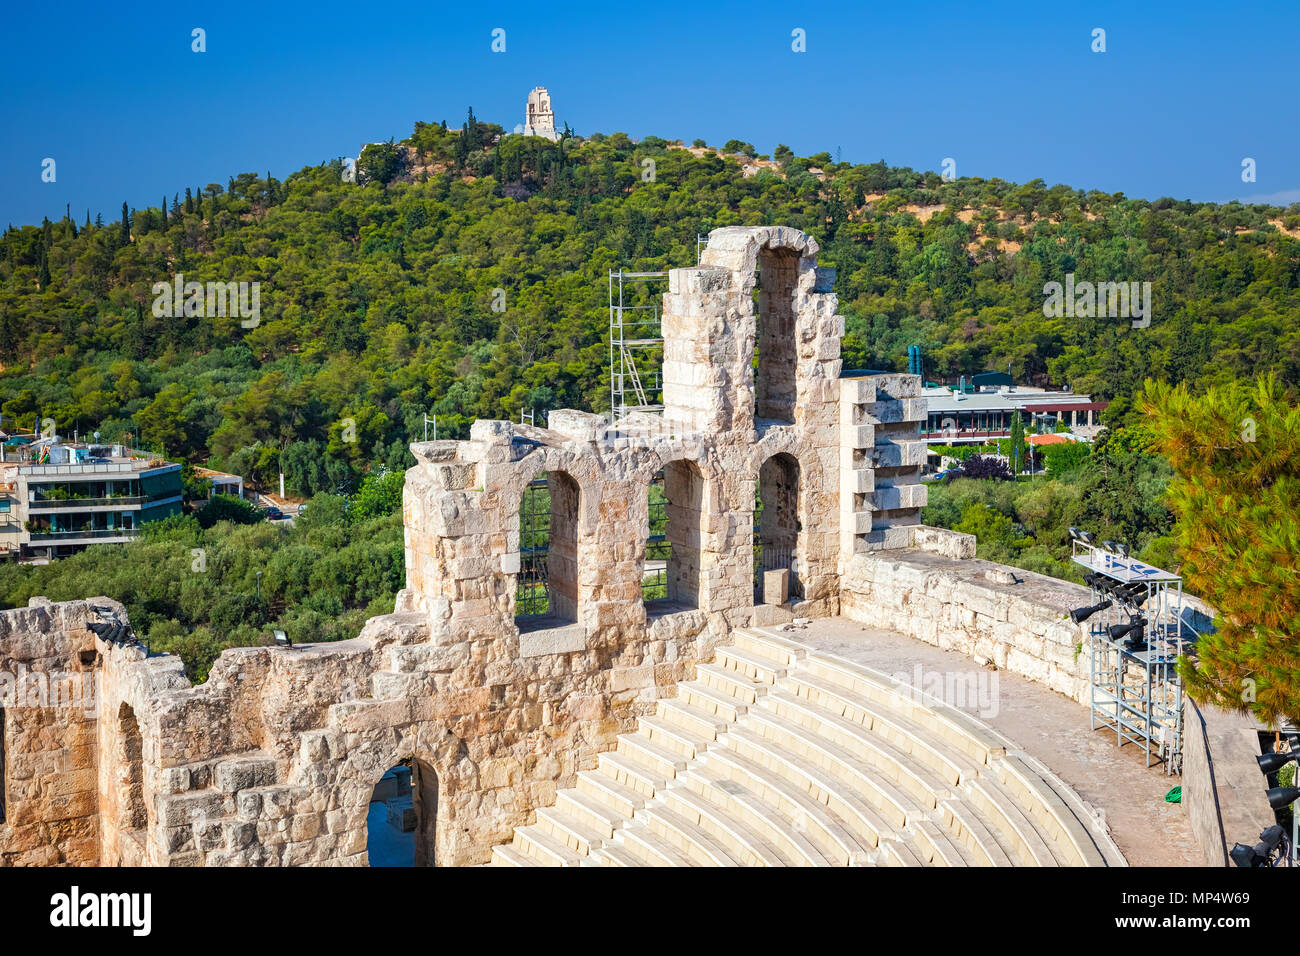 Odeon of Herodes Atticus in Acropolis of Athens - Stock Image